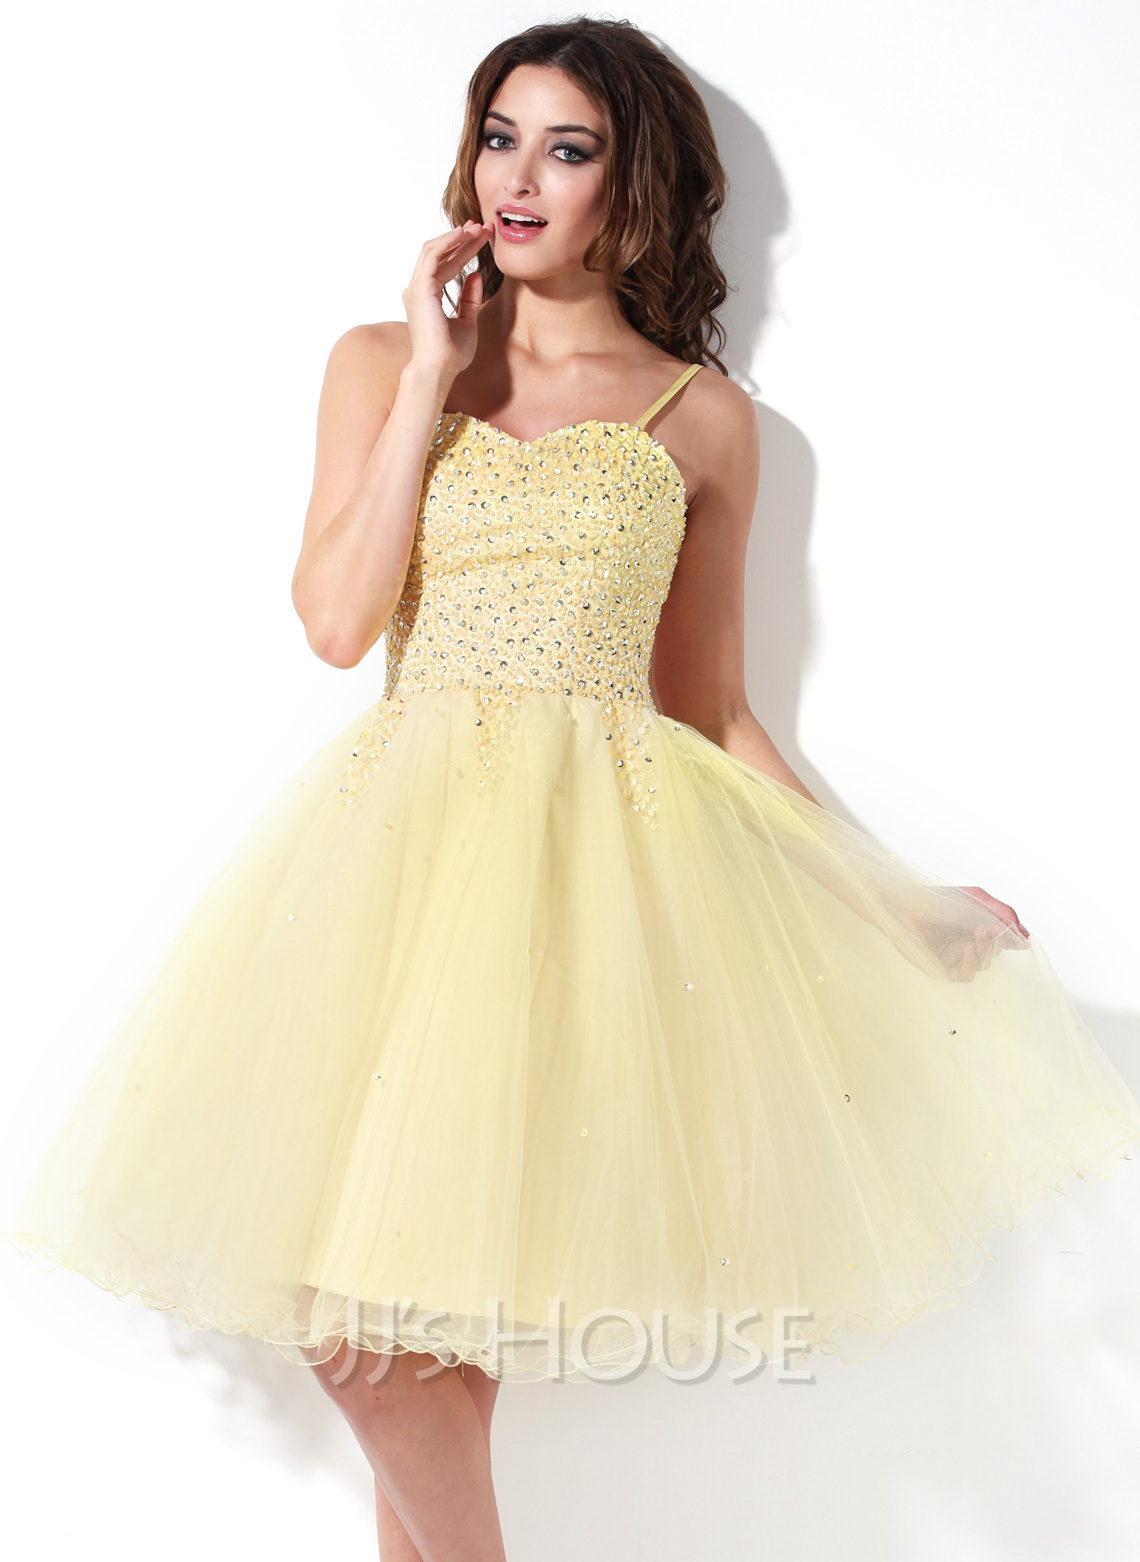 A-Line Sweetheart Knee-Length Tulle Homecoming Dress With Beading